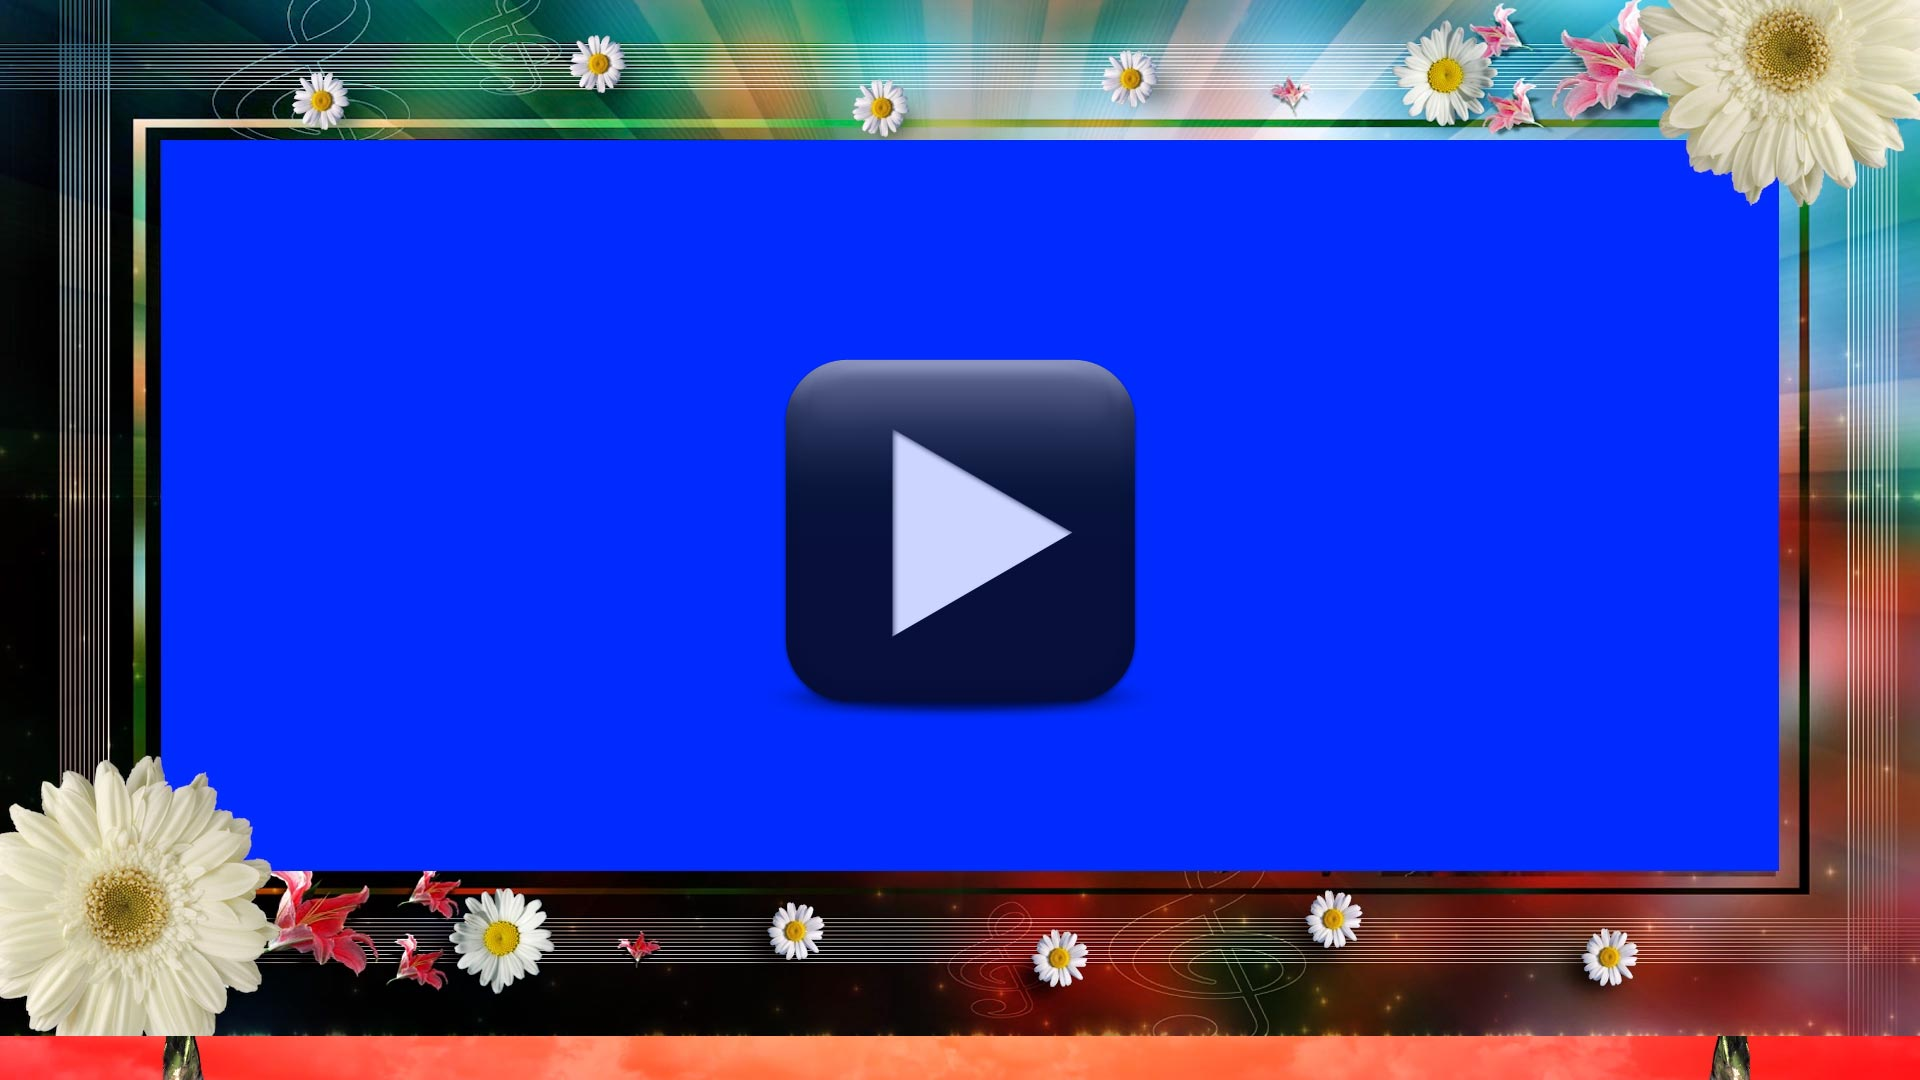 Background Video Effects For Wedding-Cool Frame Animation